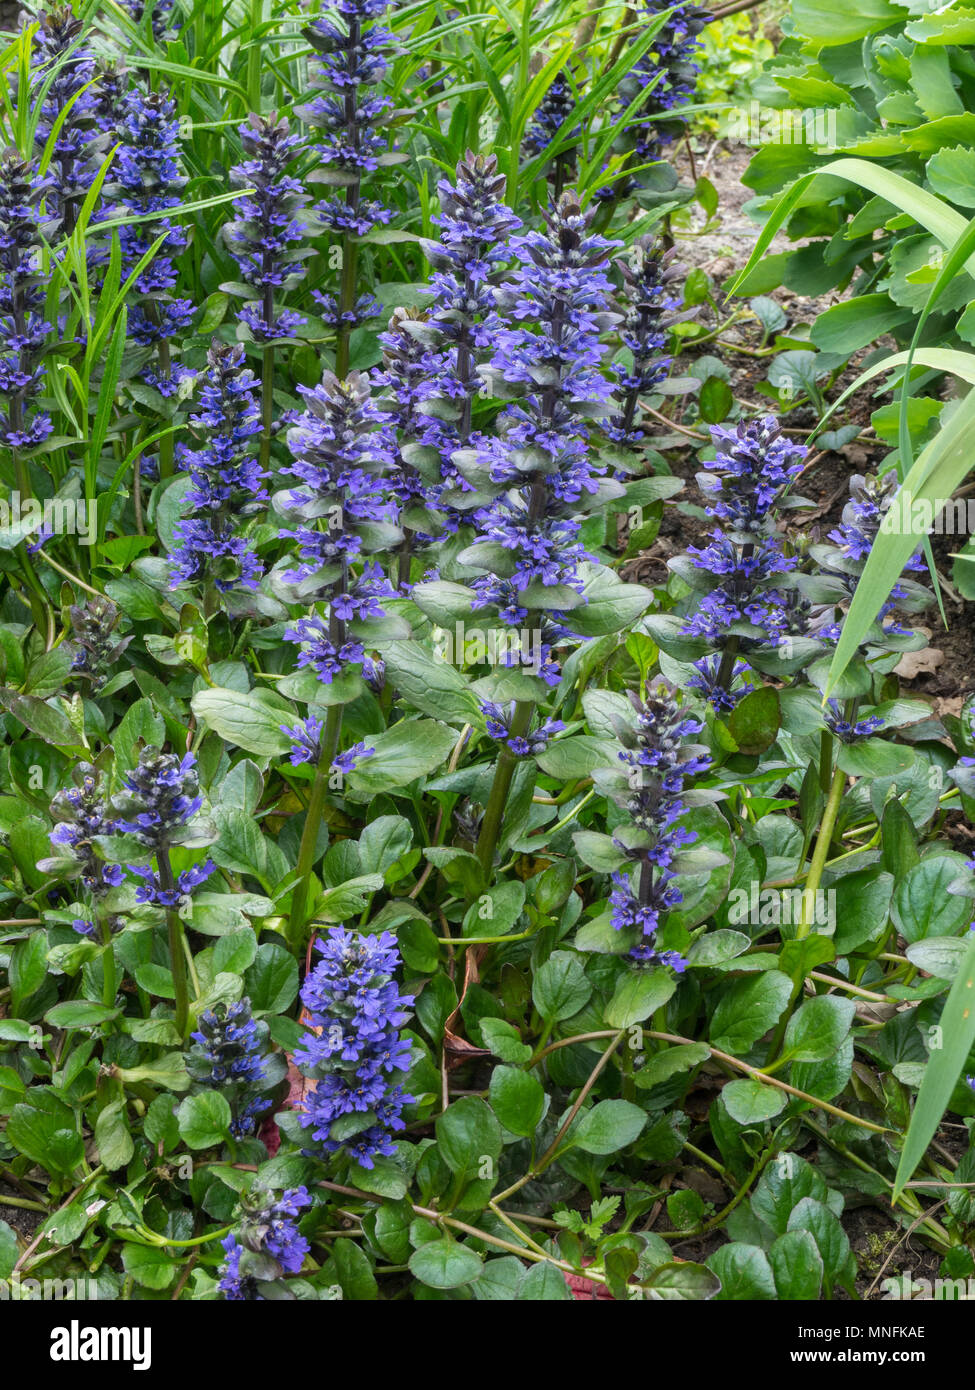 A Patch Of Ajuga Reptans Catlins Giant Showing The Tall Blue Flower